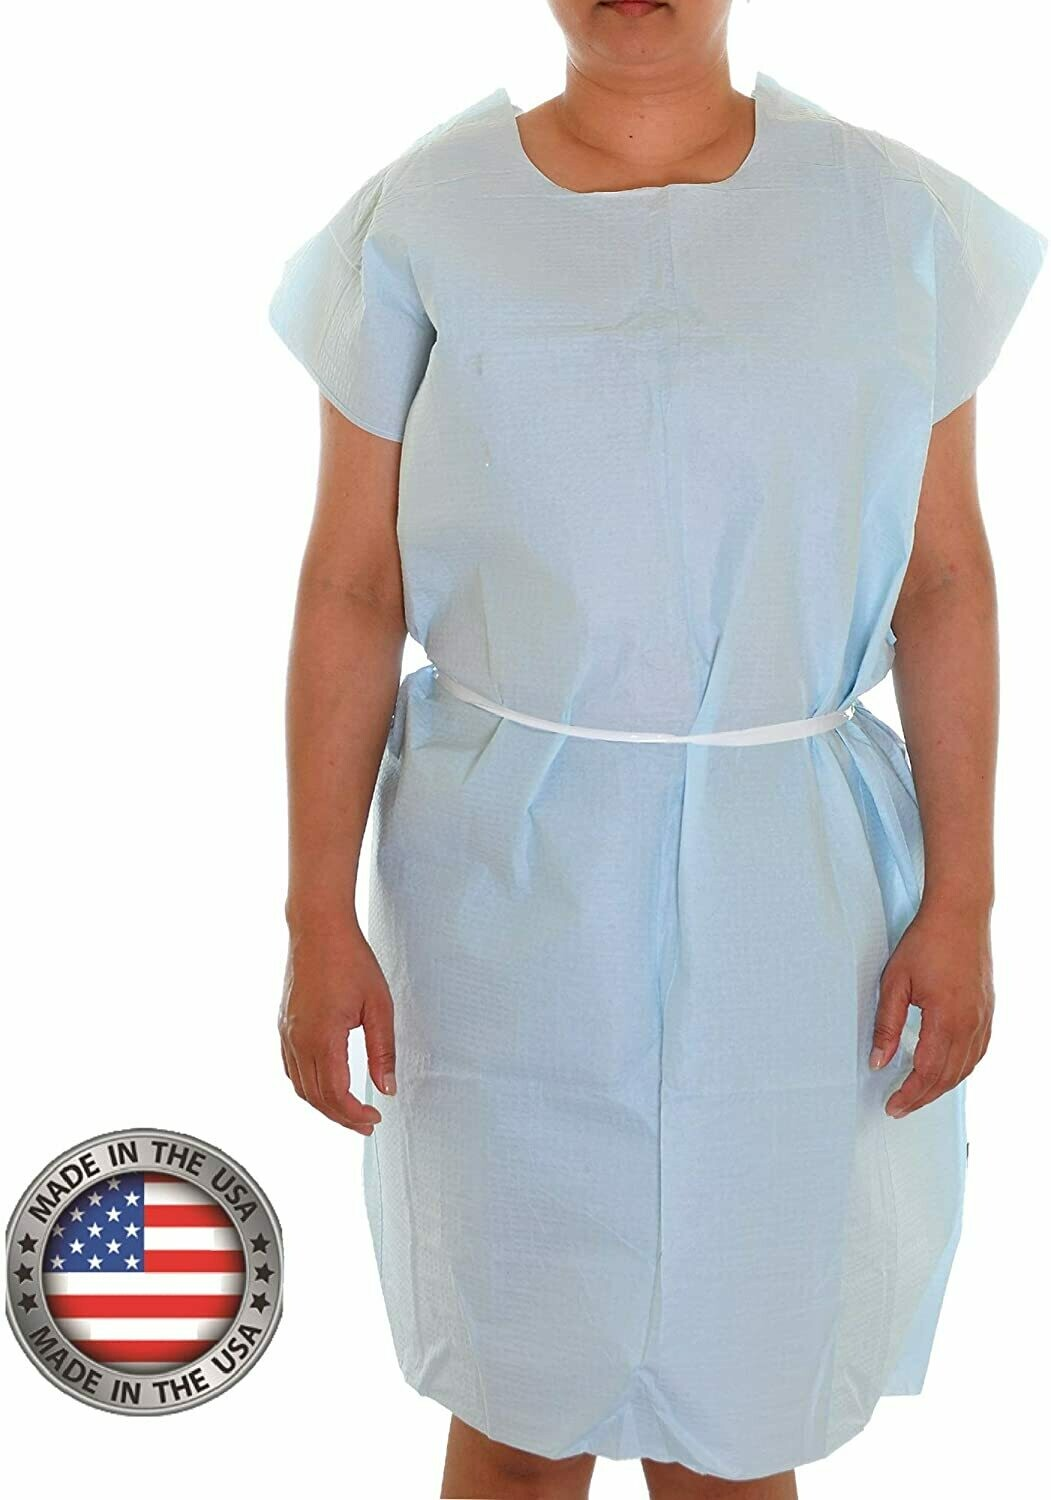 Patient Exam Gowns, Tissue/Poly/Tissue 3-Ply, Latex-Free, Disposable, Universal, 30″ x 42″, Blue-(50/Box)